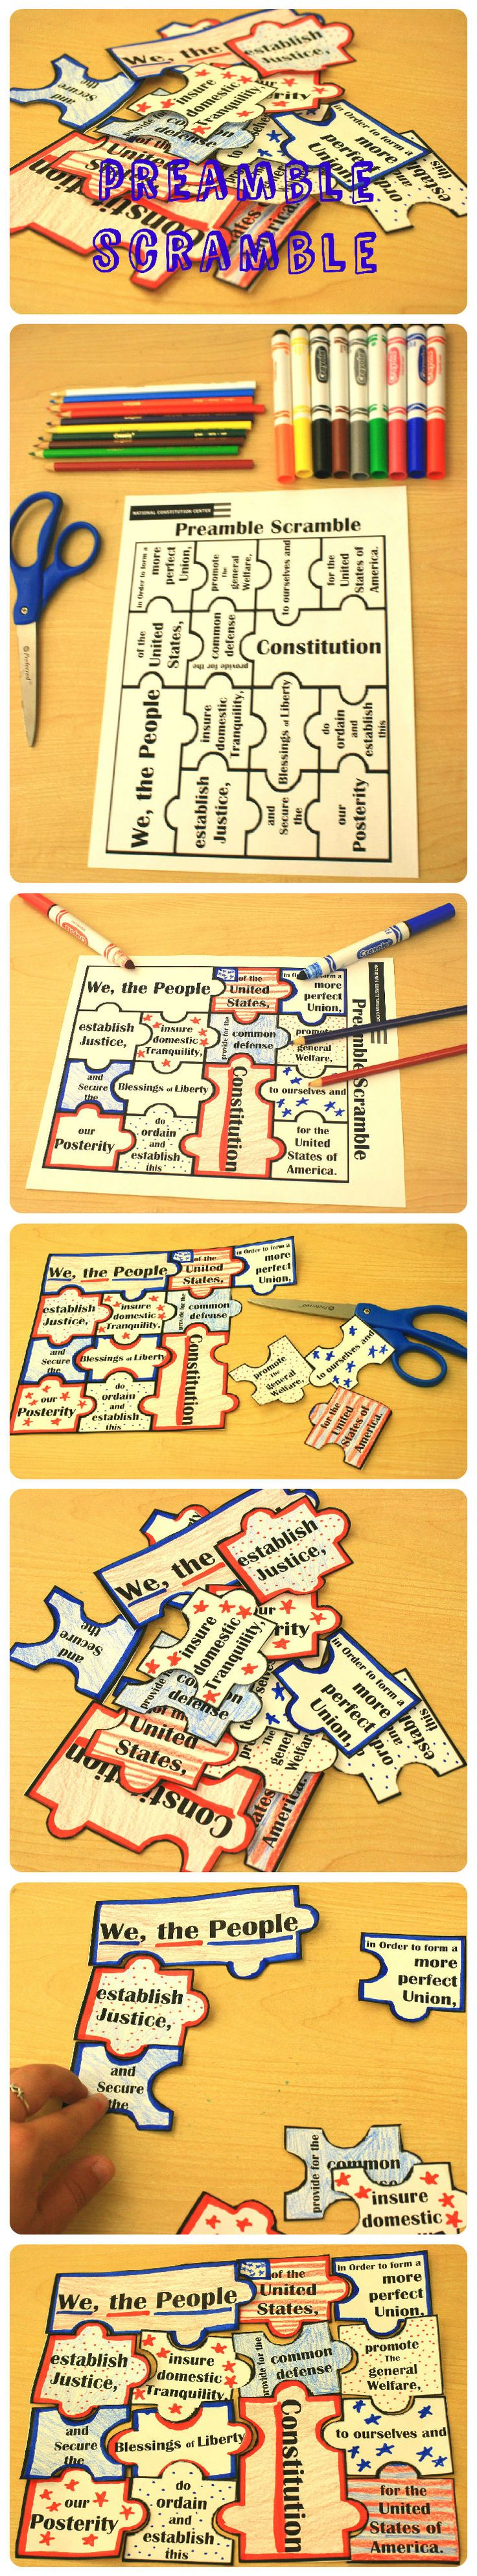 Cycle 3, Week 23, HISTORY: Have fun getting to know the phrases of the Preamble of the #Constitution while unscrambling your #DIY puzzle. Great for kids to personalize and decorate for #July4th